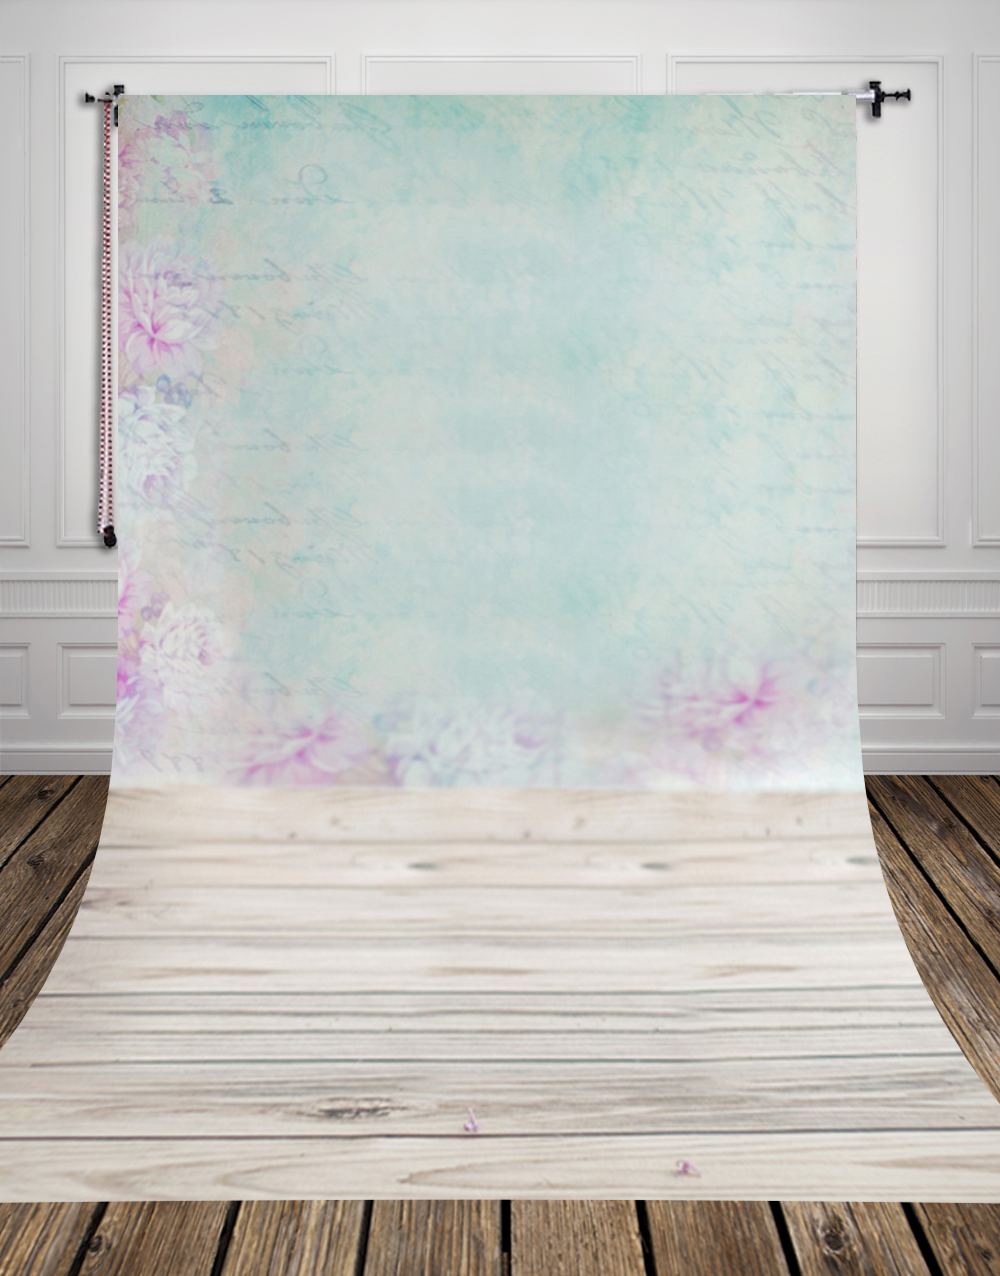 Pastel wallpaper and light wood floor printed photo studio backdrop newborn photography backdrops background D-9633 photography backdrops newborn wood floor photo background baby flower backdrop for photo studio props small size